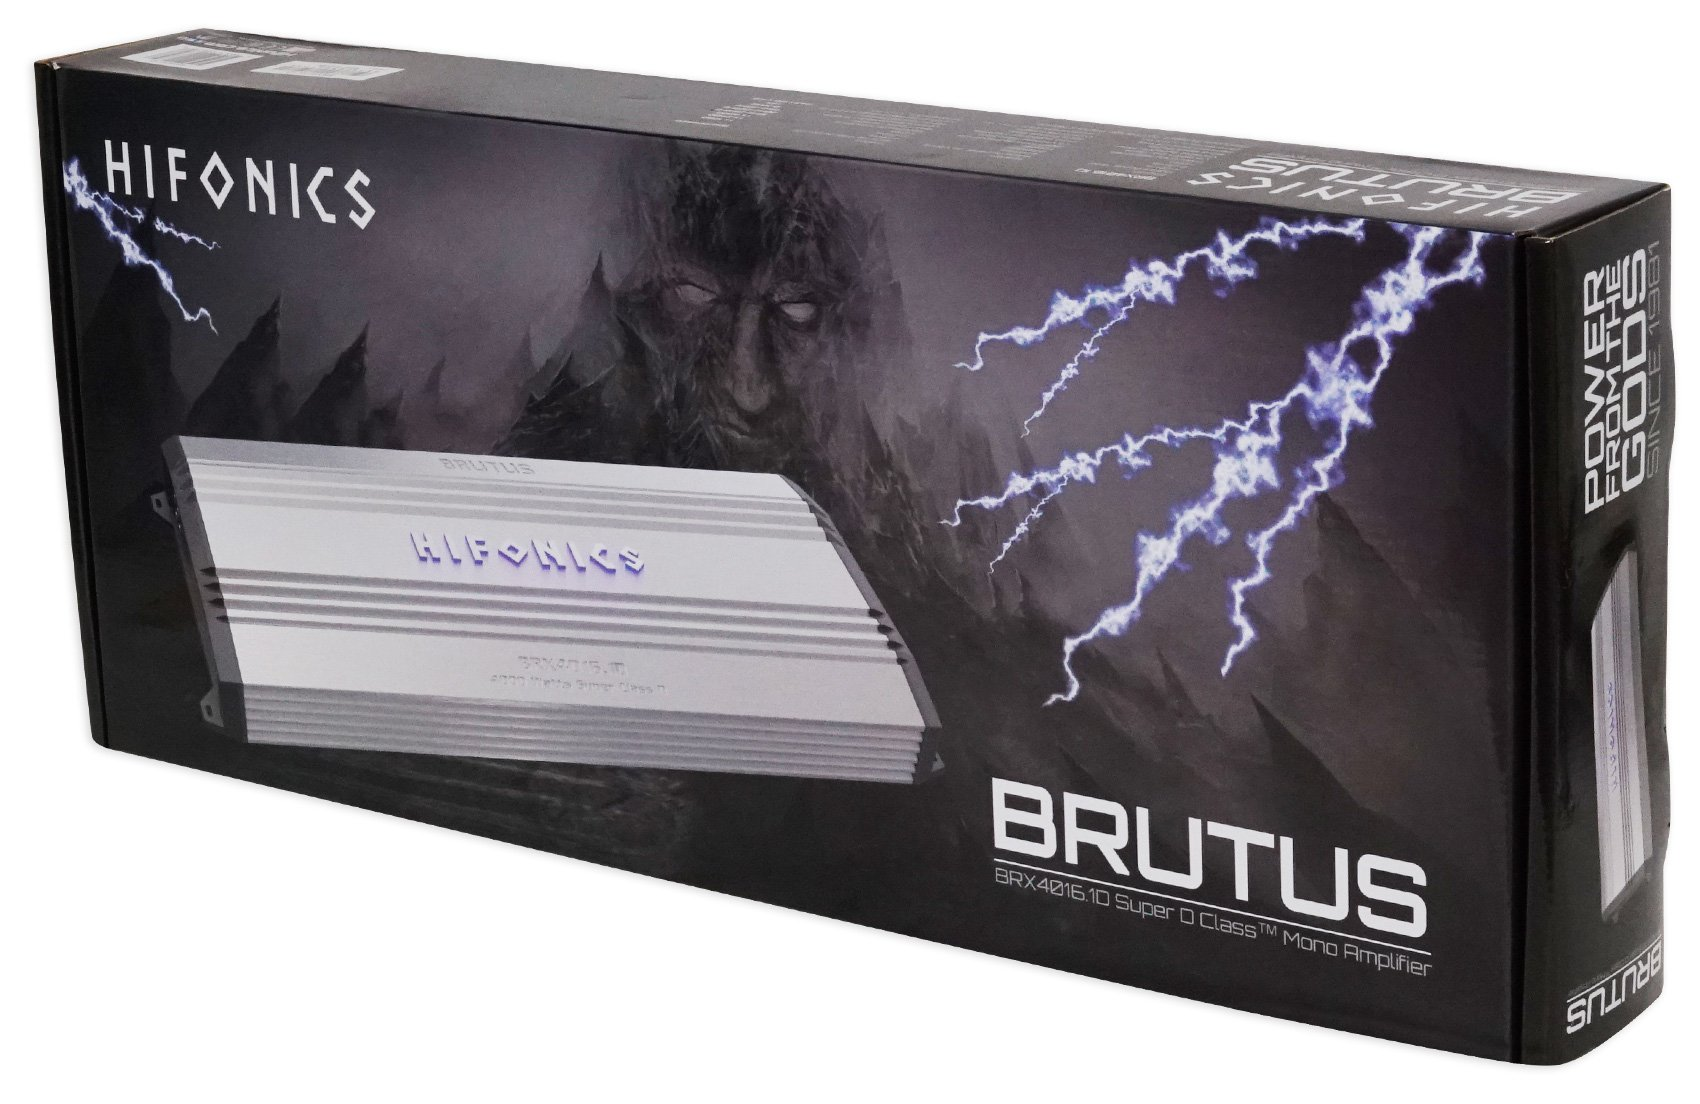 Hifonics BRX4016.1D Brutus 4000 Watt Mono Amplifier Car Audio Class-D Amp by Hifonics (Image #9)